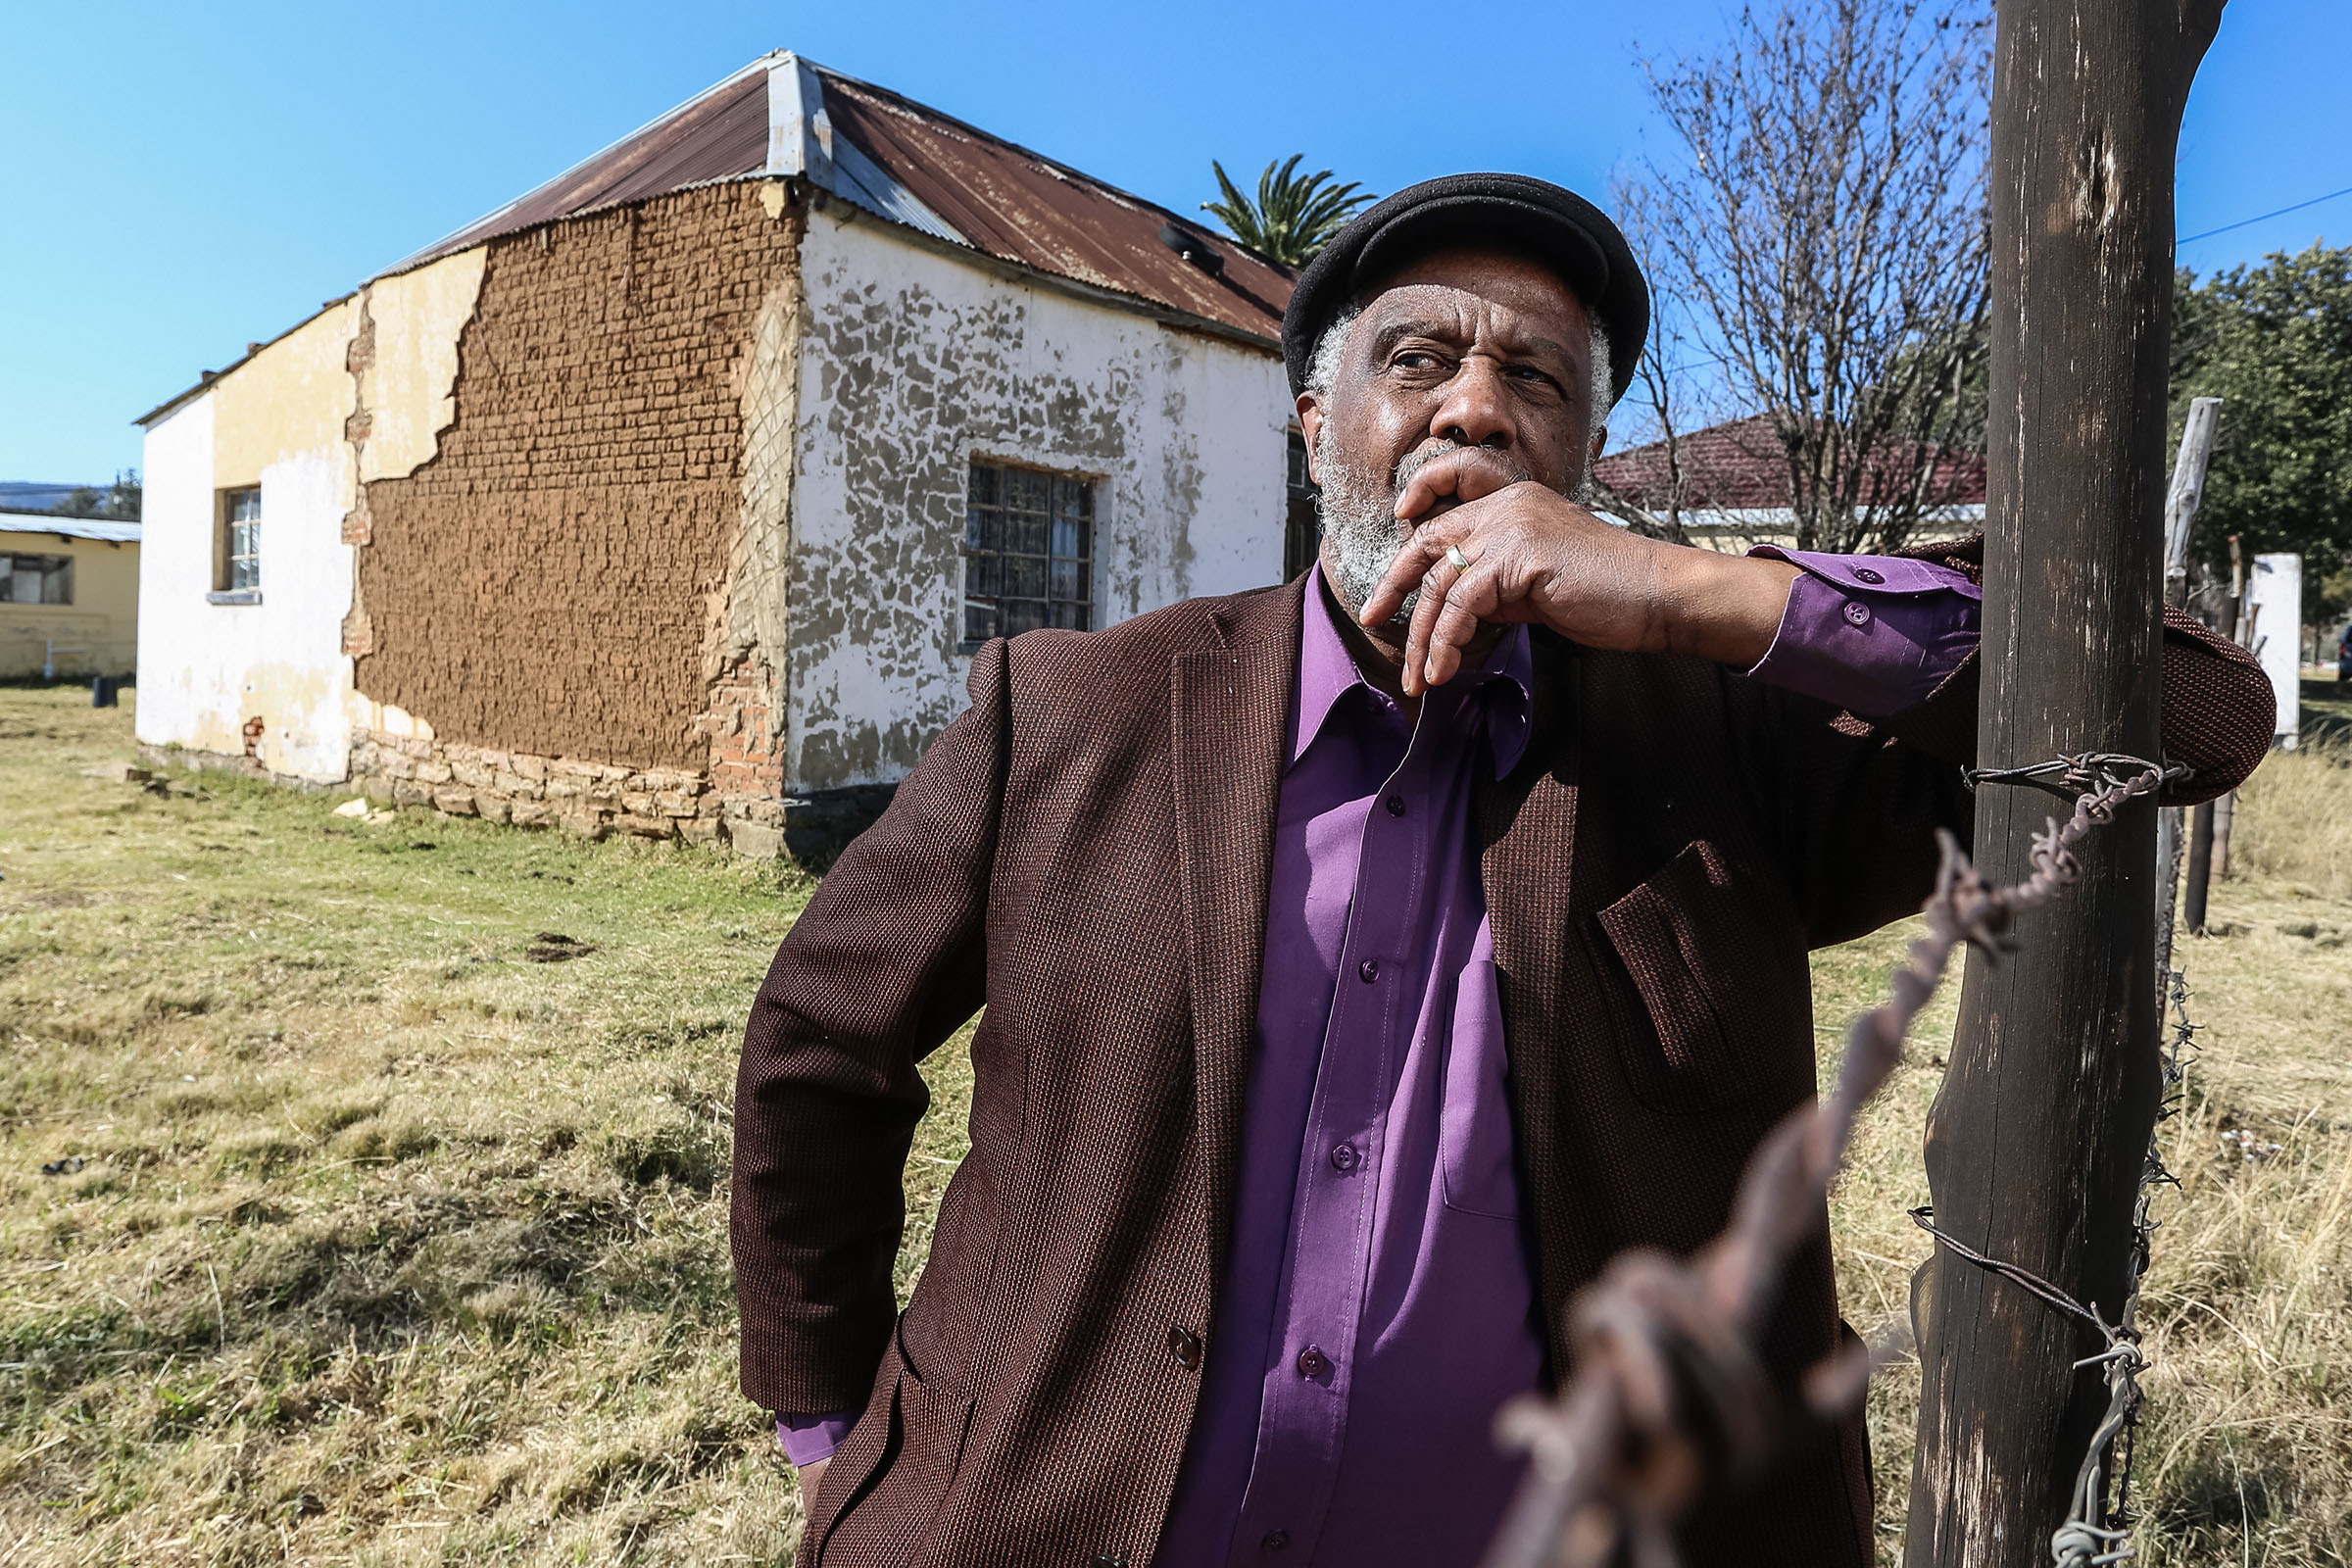 17 July 2019: Dumisa Ntsebeza was born in Cala in the Eastern Cape. He was involved in the political struggle against apartheid in the mid-1970s and served time, completing his law degree in prison.